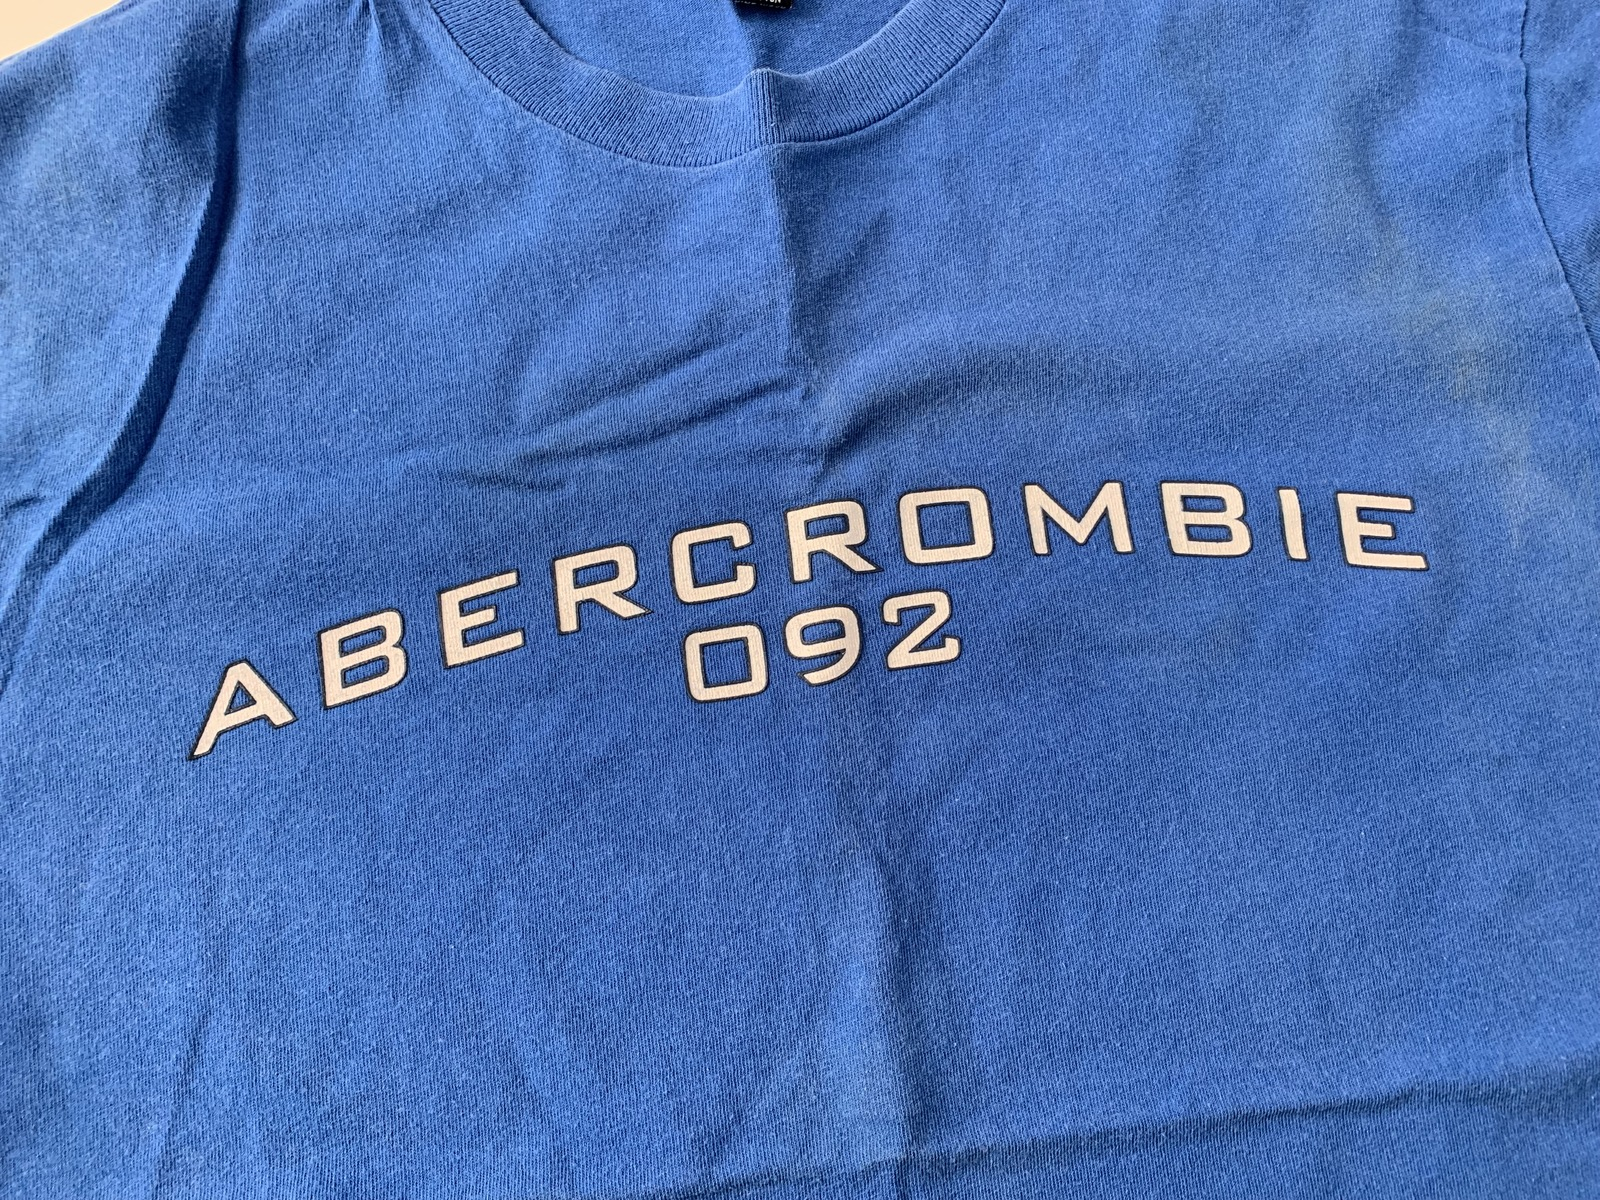 Abercrombie & Fitch Gym Issue Tee T-Shirt Blue | Men's Size Medium